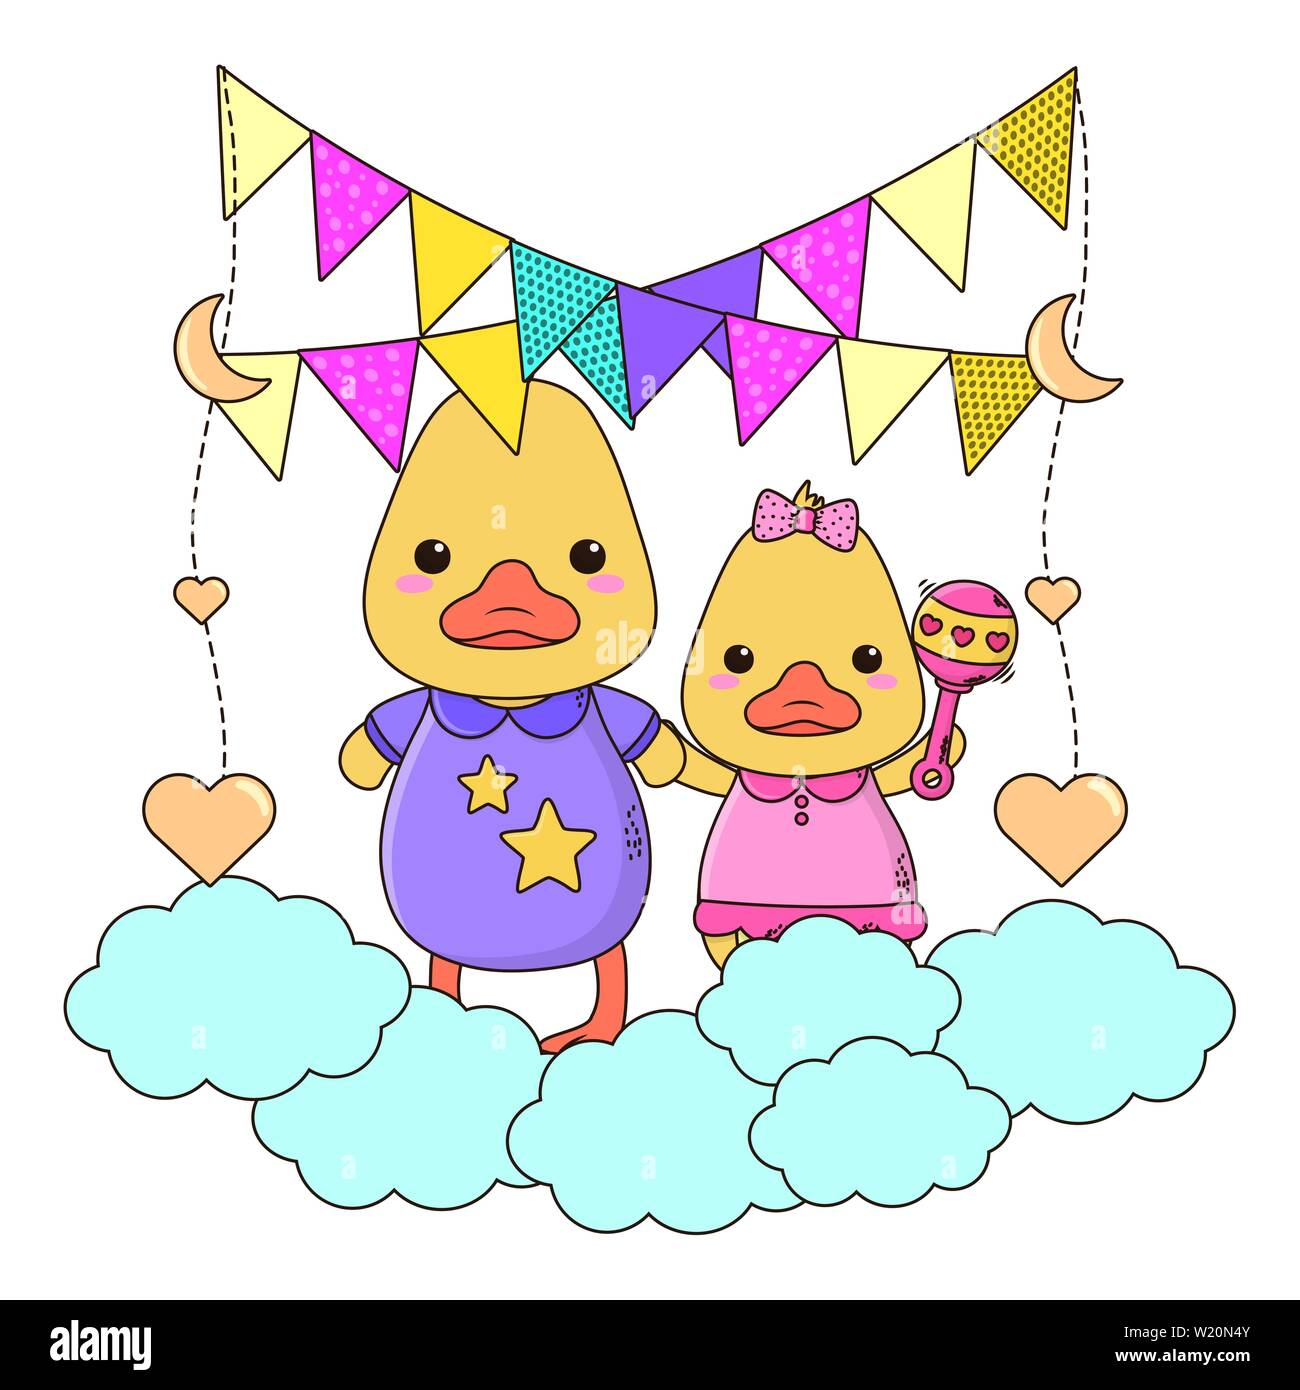 Baby Ducks Cartoons Design Baby Shower Invitation Party